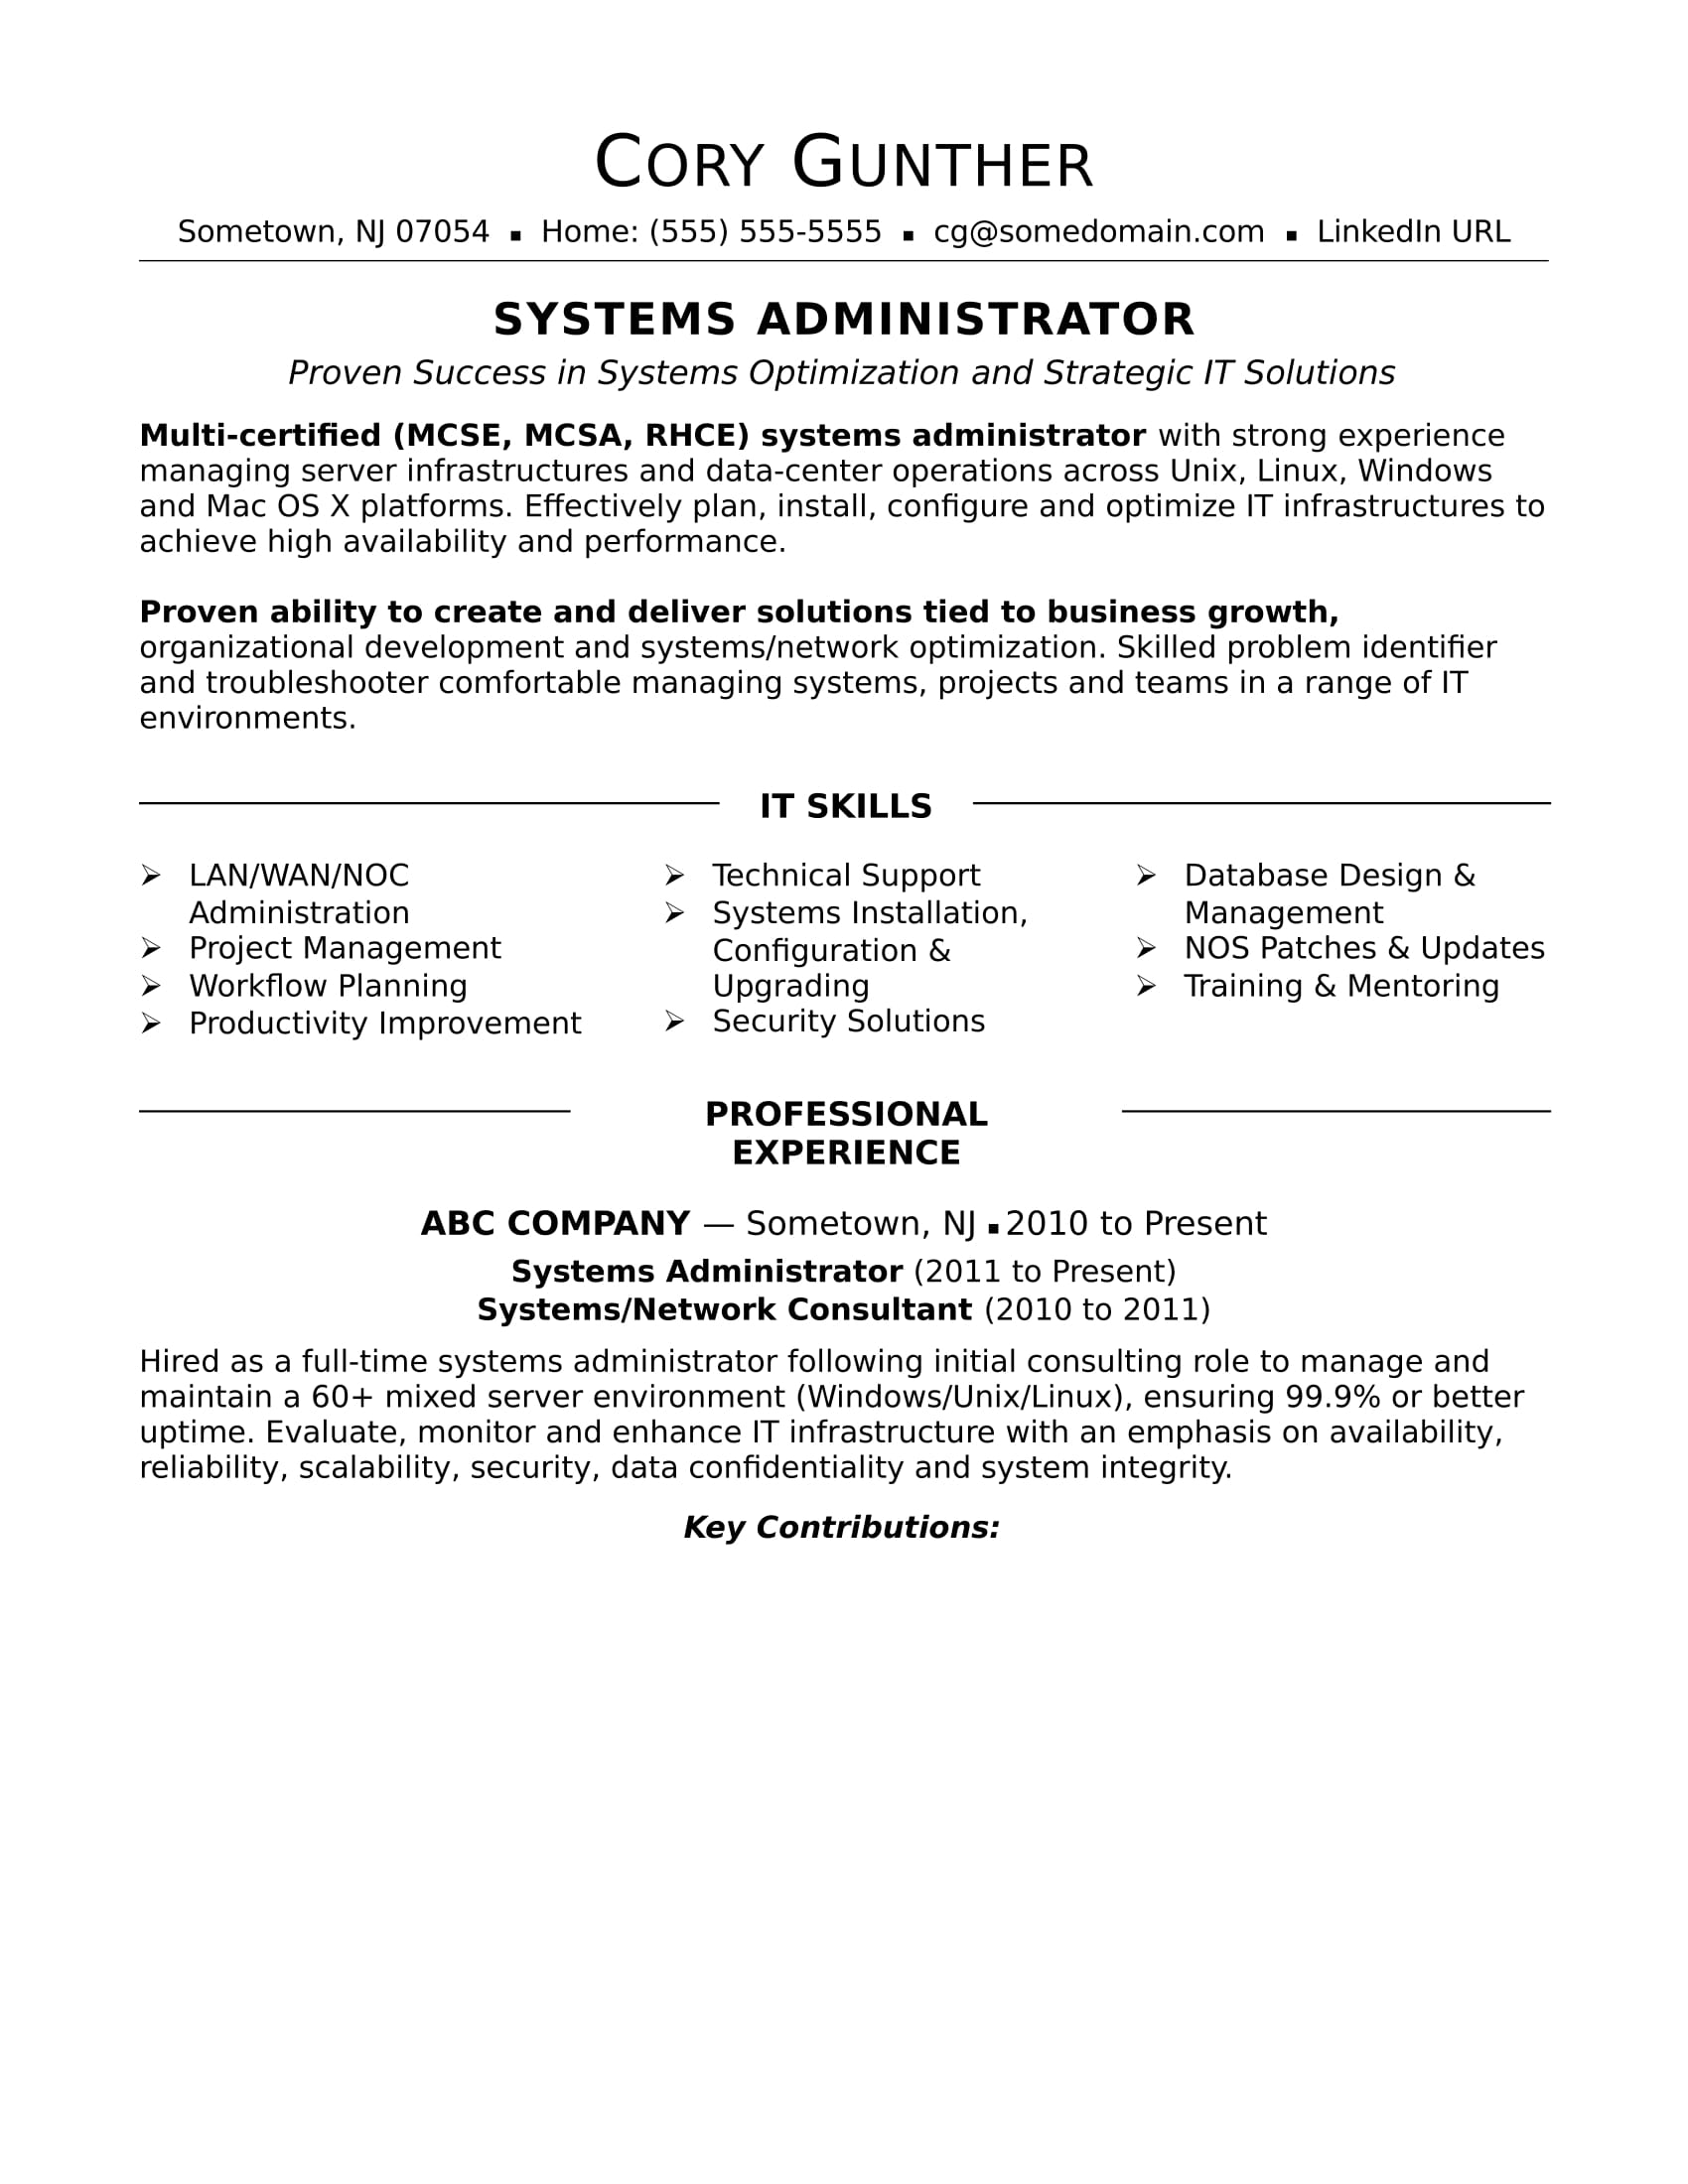 How To Create A Resume Template Sample Resume For An Experienced Systems Administrator Monster